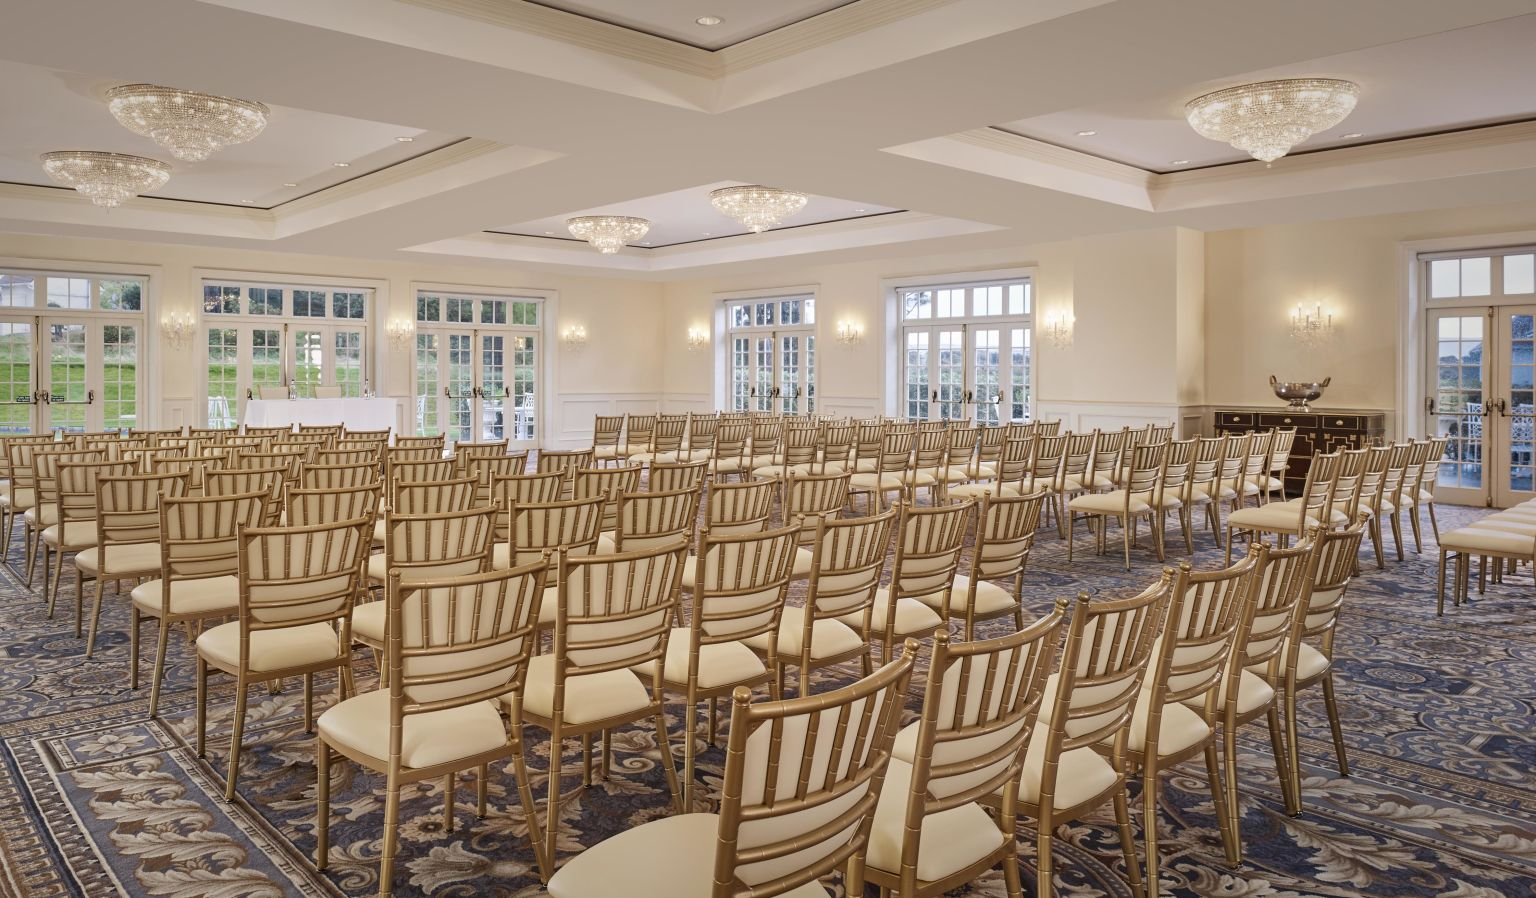 Event Venue with Rows of Chairs